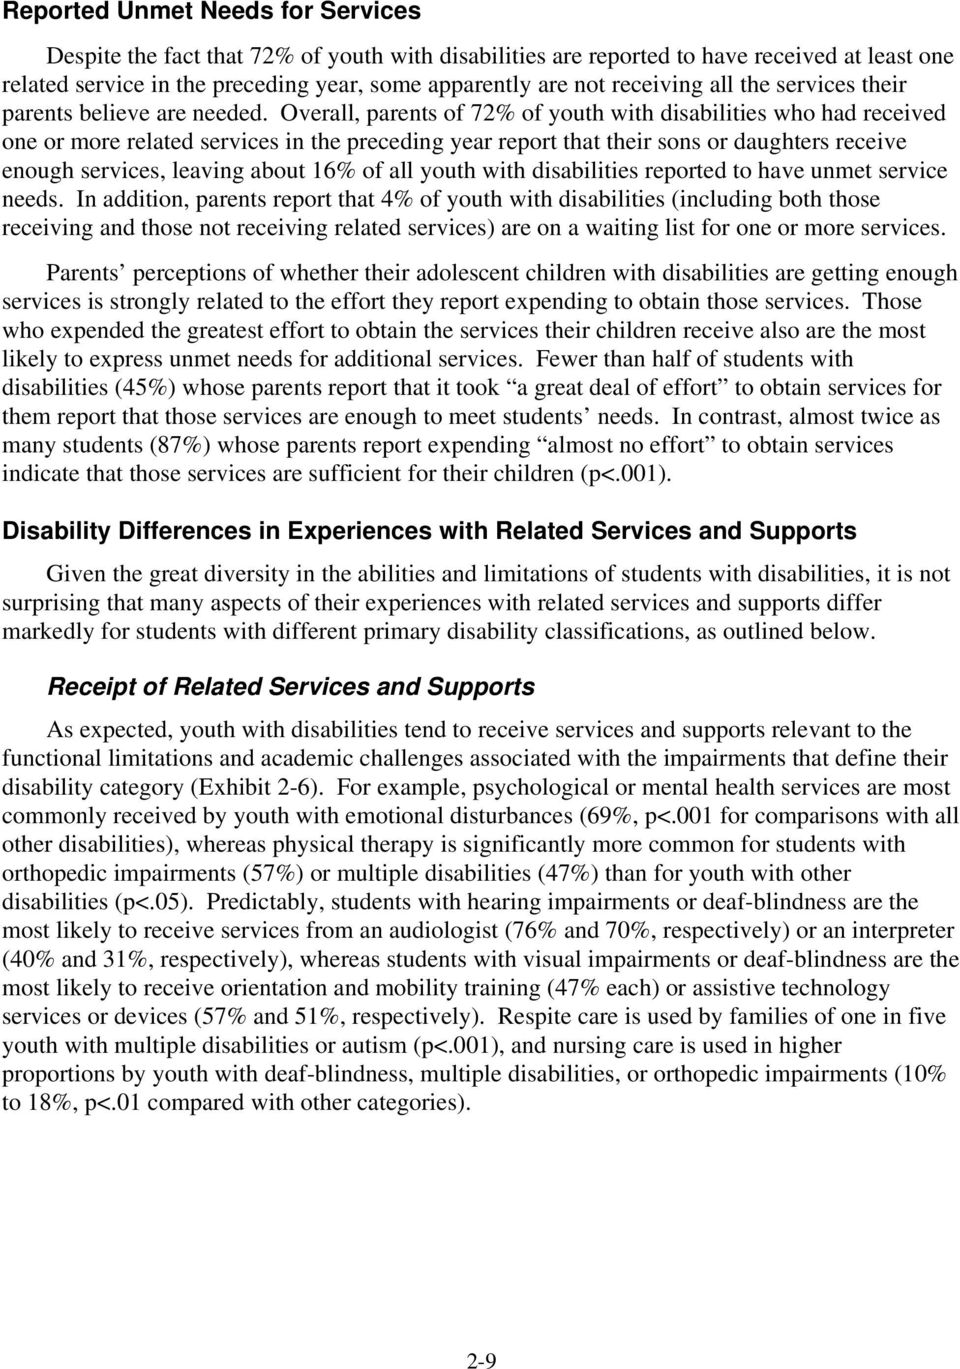 Overall, parents of 72% of youth with disabilities who had received one or more related services in the preceding year report that their sons or daughters receive enough services, leaving about 16%